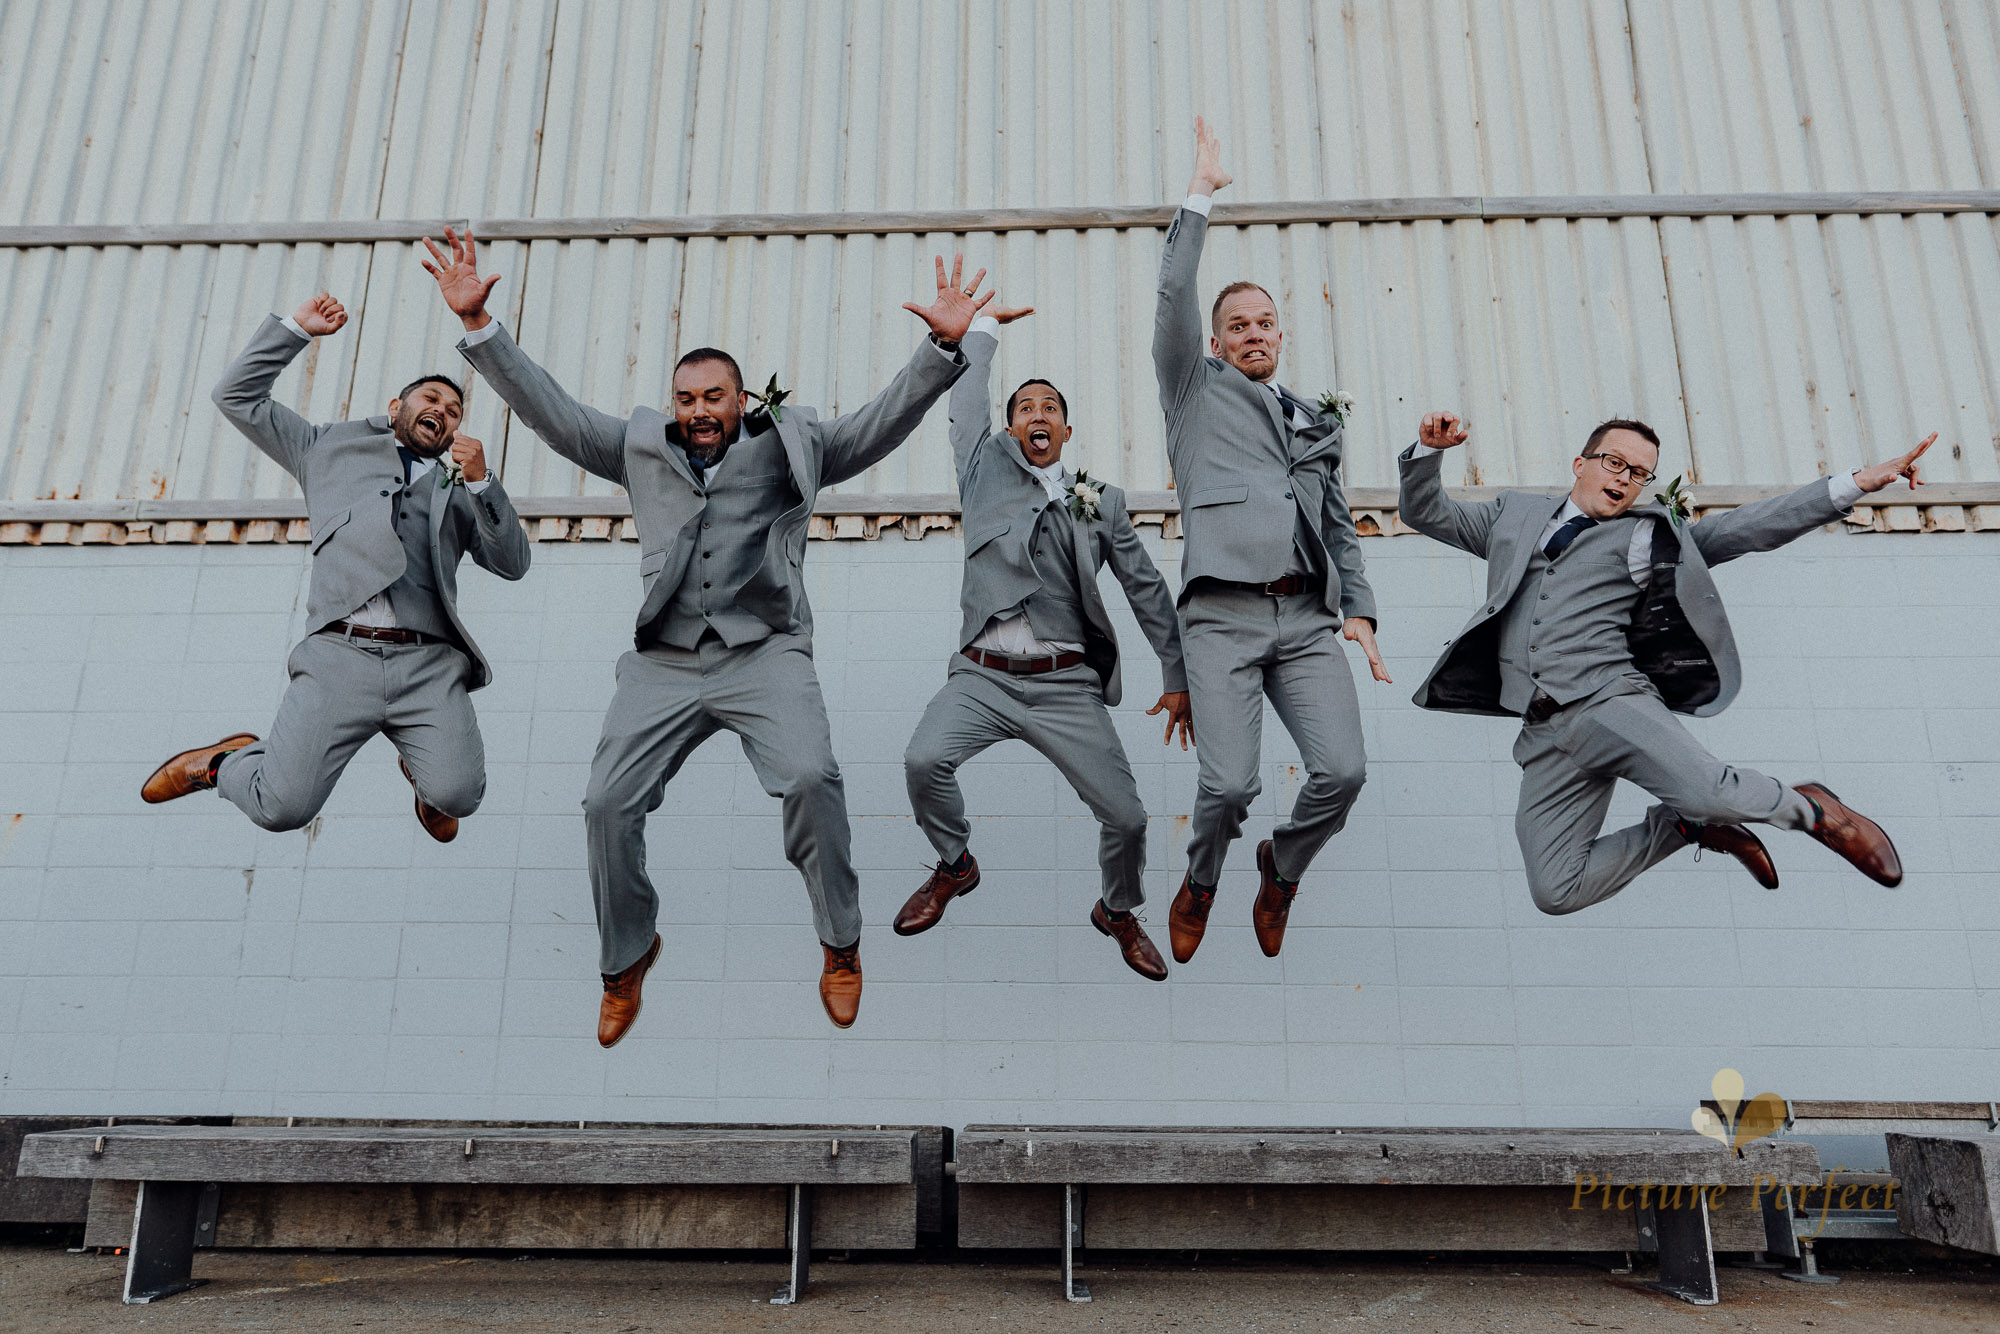 the groom and groomsmen posing for a jumpshot